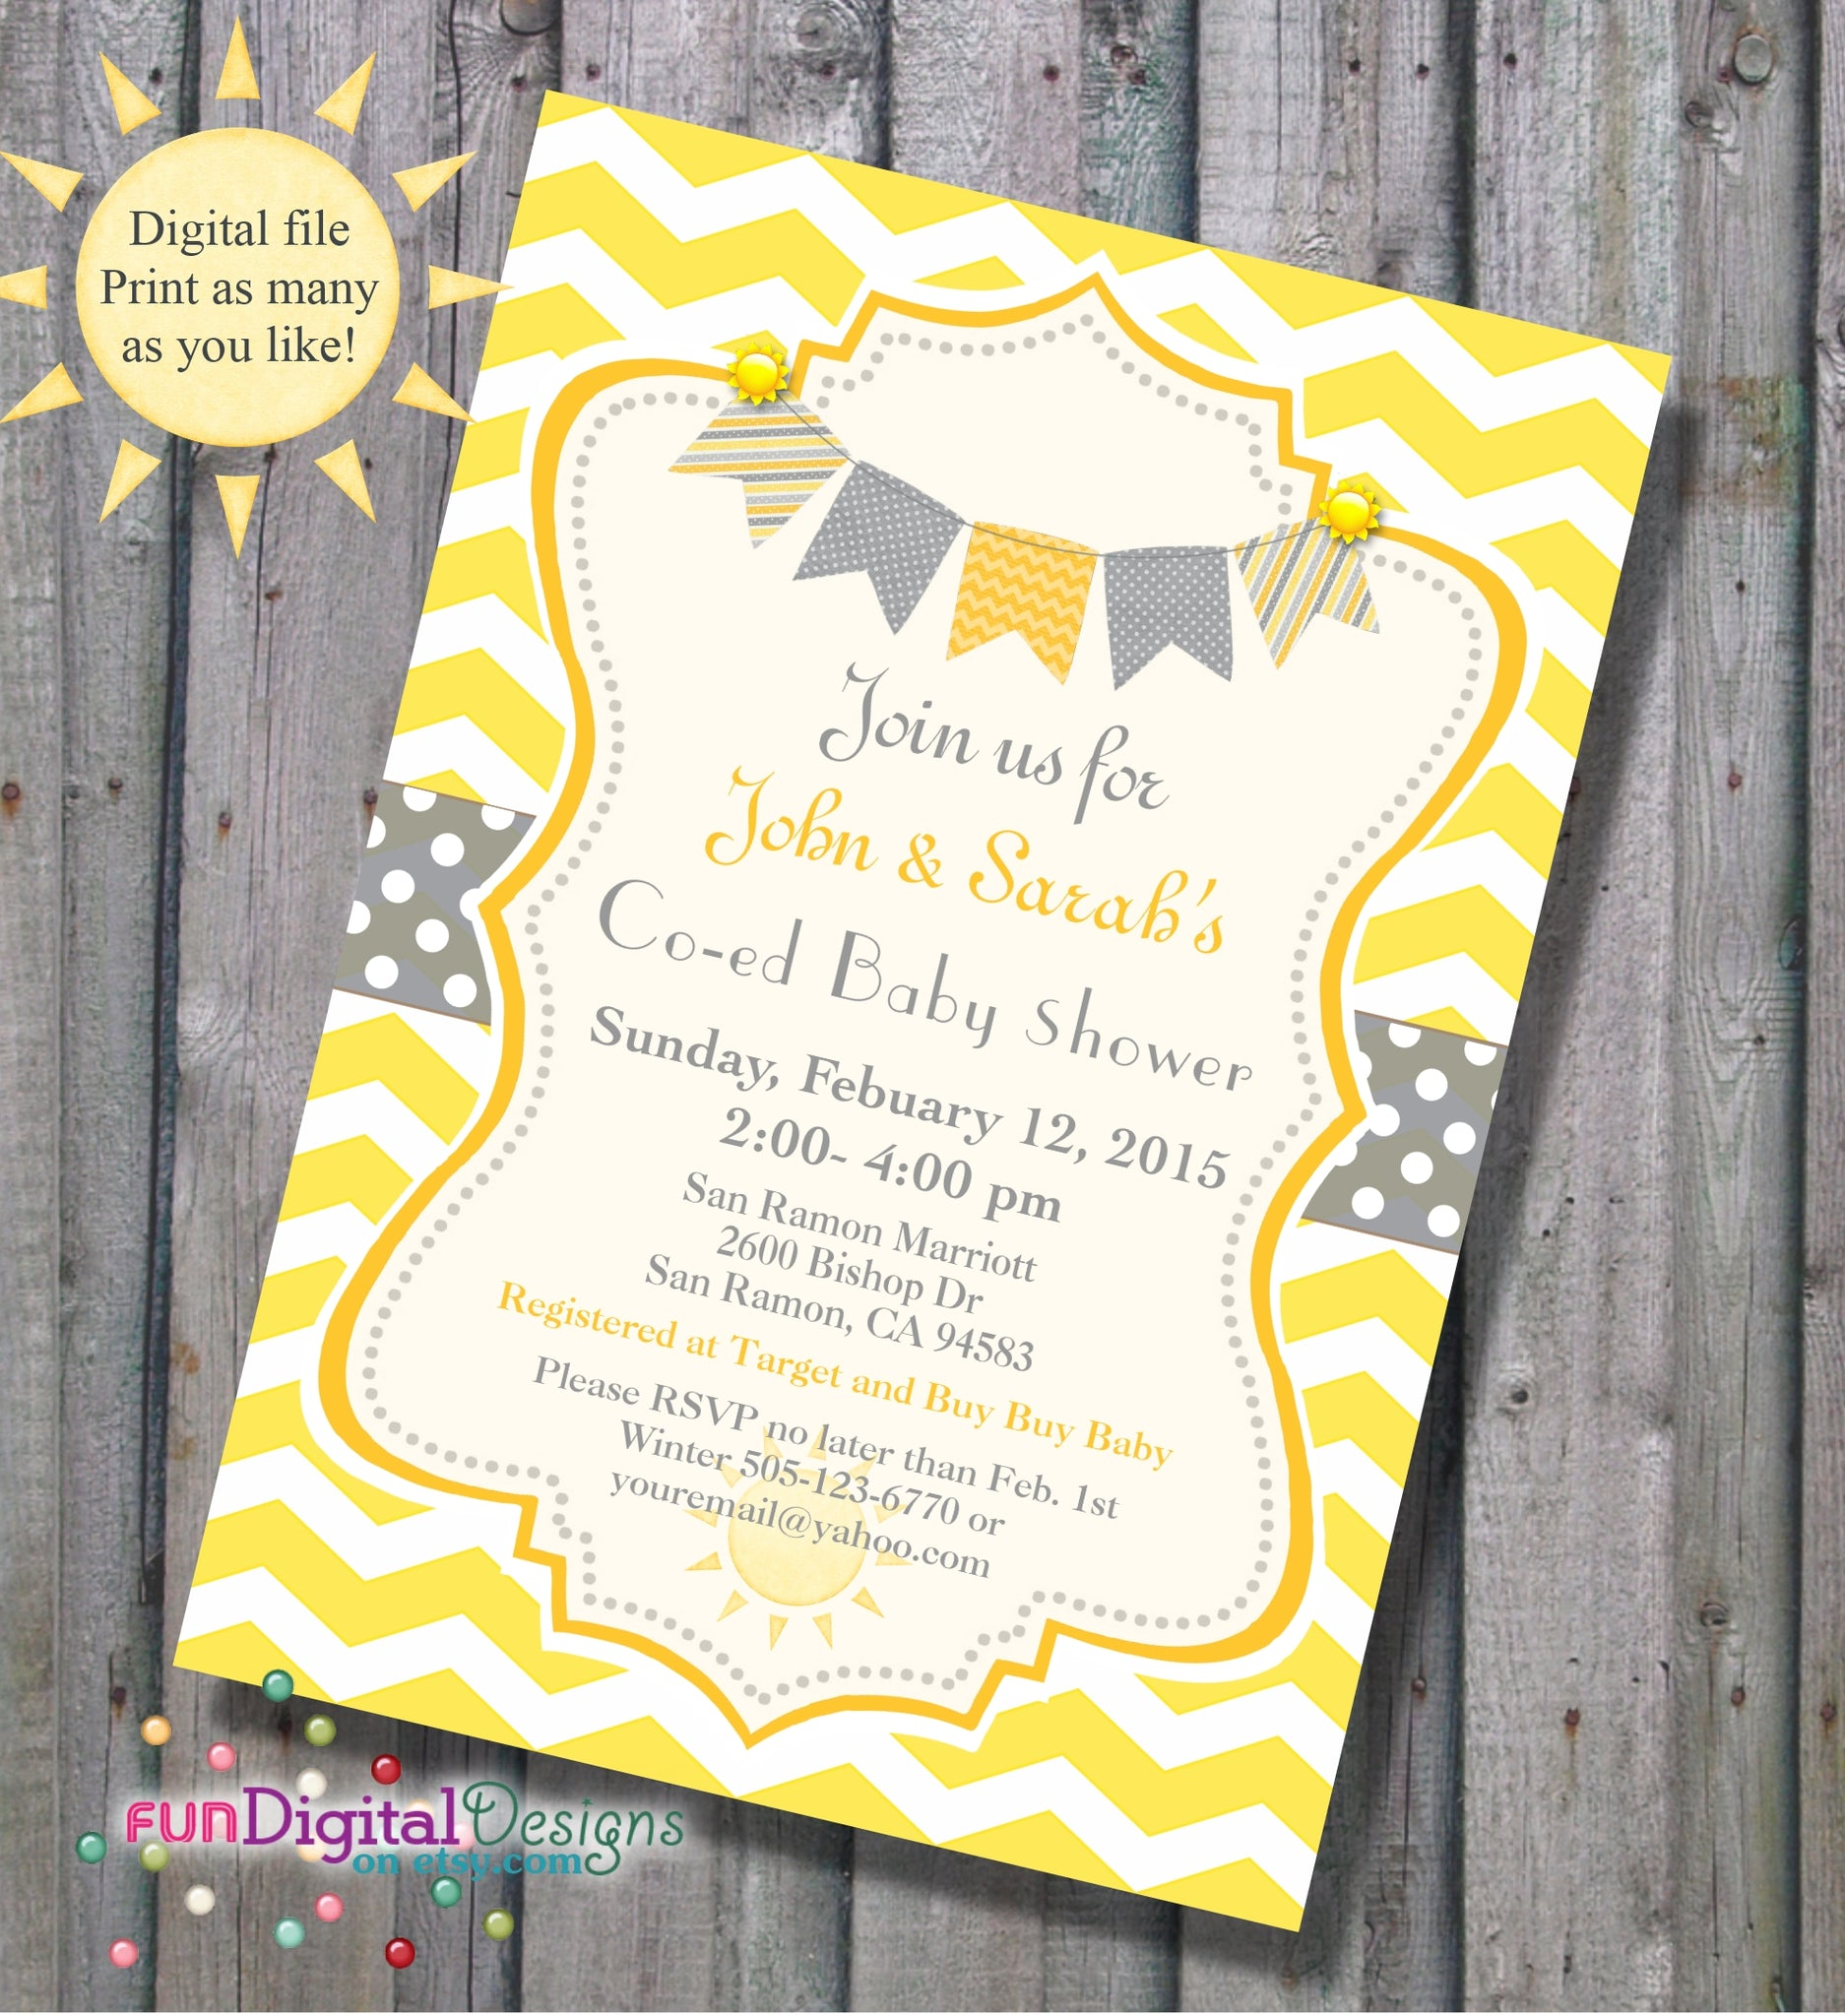 Sunshine baby shower invitation in yellow and grey gray chevron sunshine baby shower invitation in yellow and grey gray chevron stripes diy printable co ed baby shower invitation gender neutral stopboris Gallery